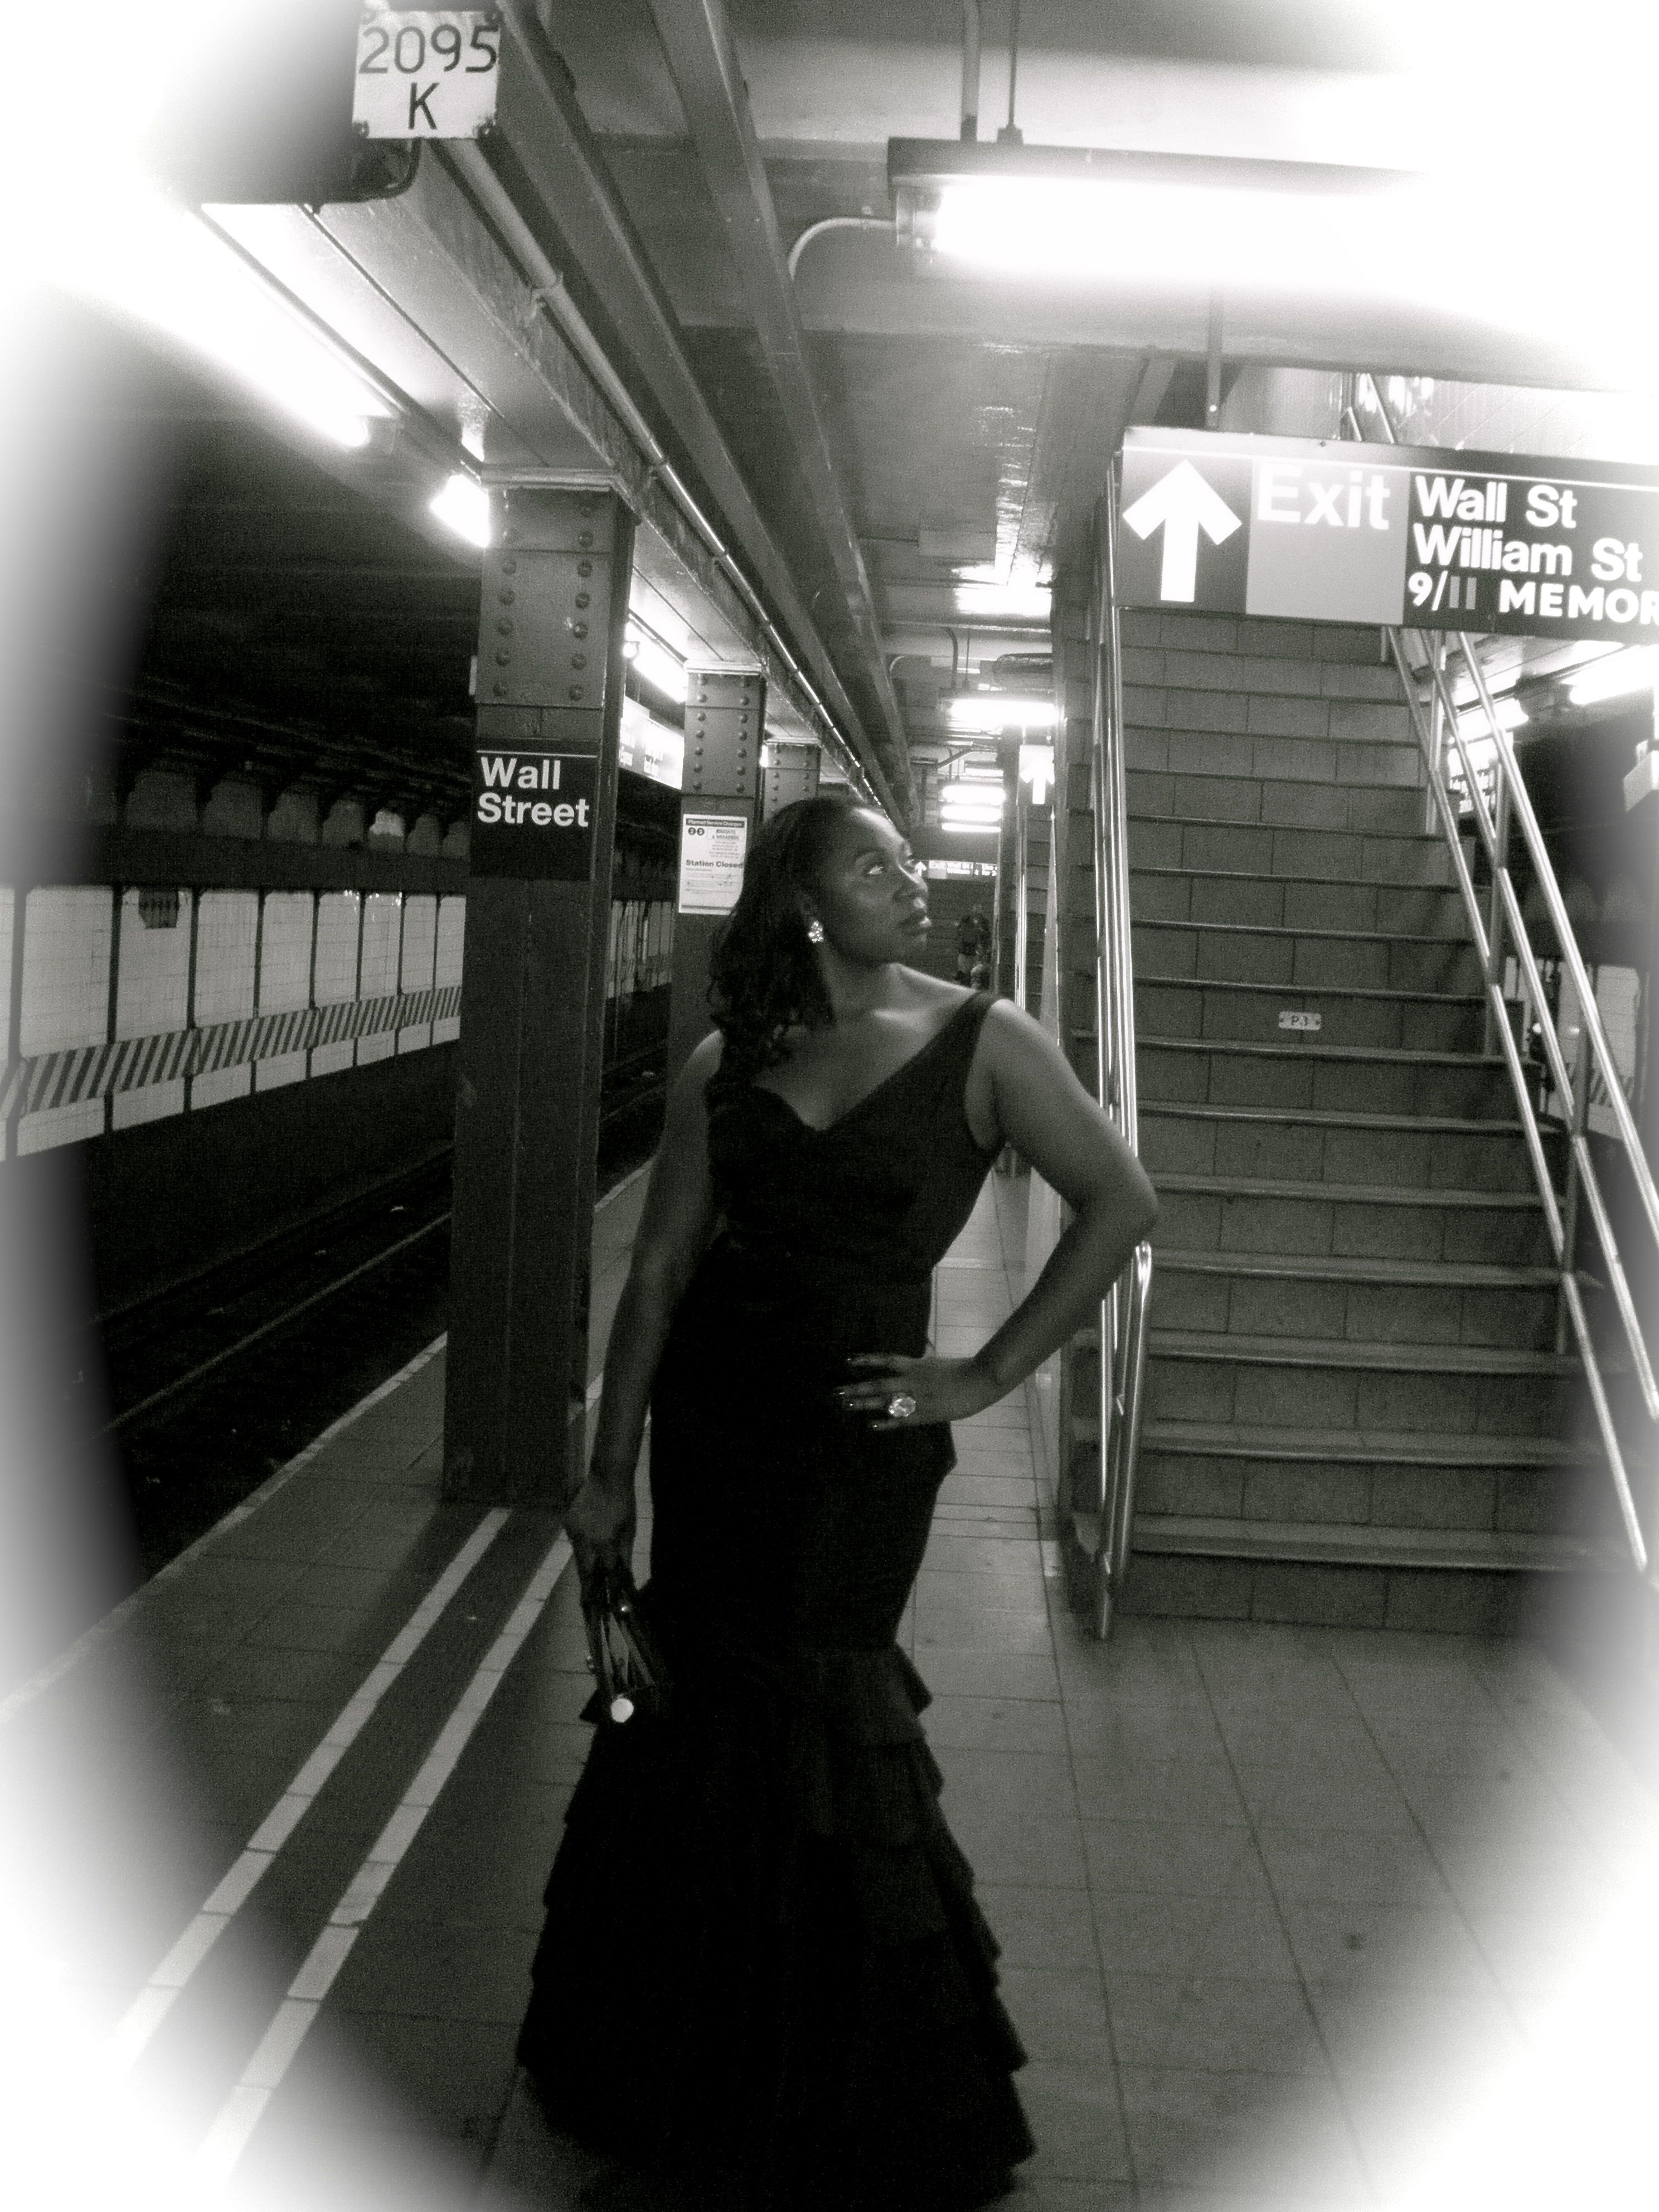 It was a a very fun party...and then I took the train home.